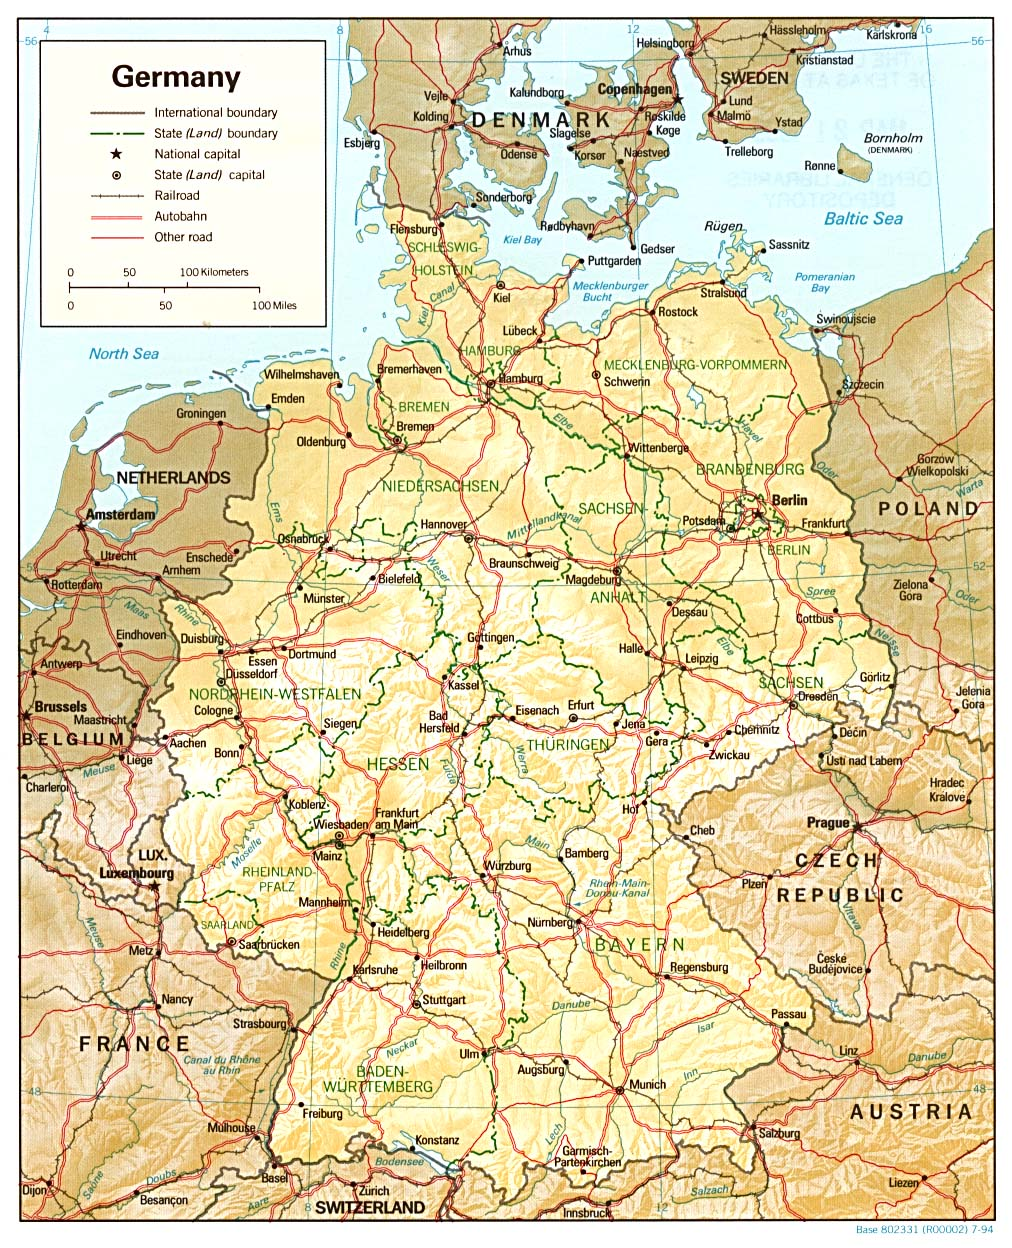 Map Of Germany And Surrounding Countries.Germany Maps Perry Castaneda Map Collection Ut Library Online